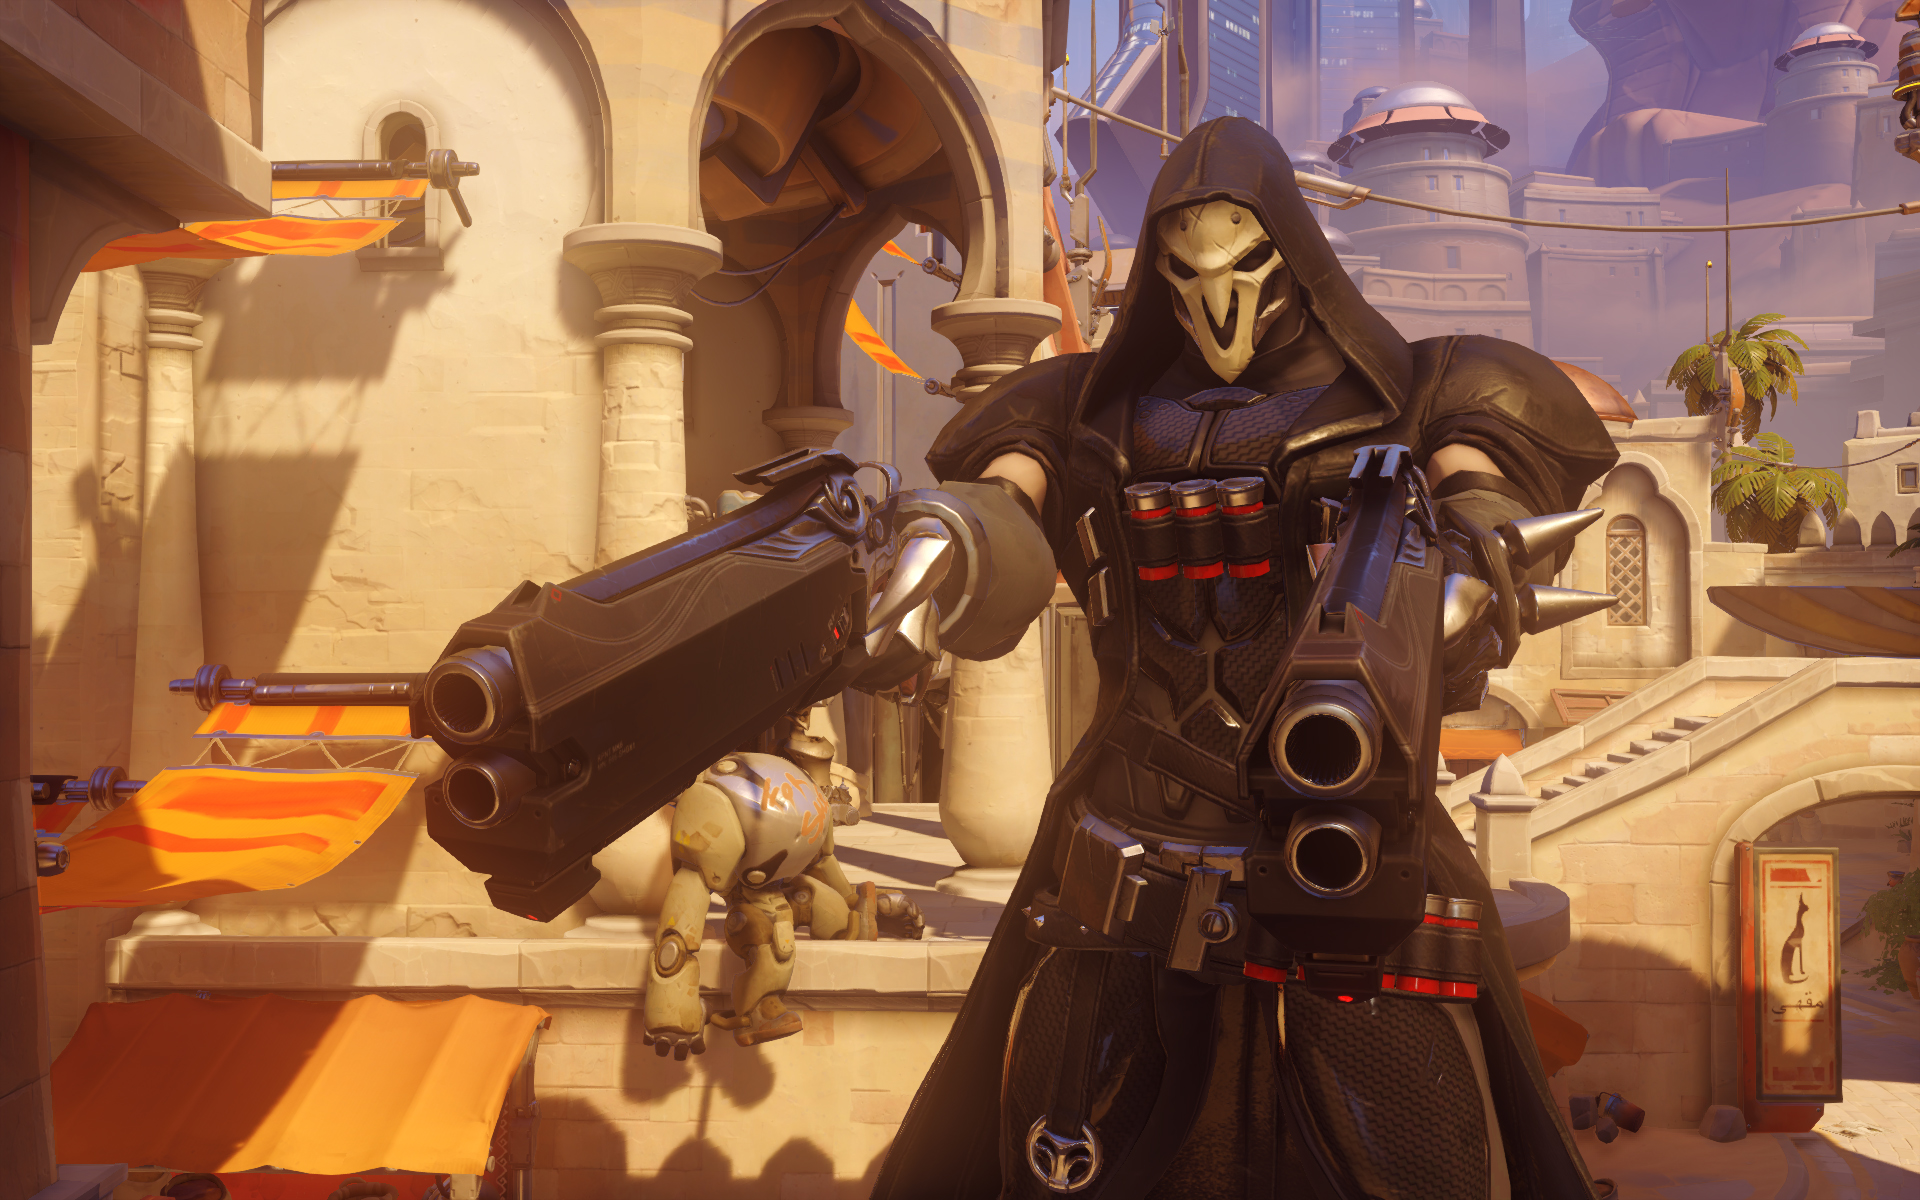 Reaper Overwatch 003 Everything You Need To Know About Overwatchs Story